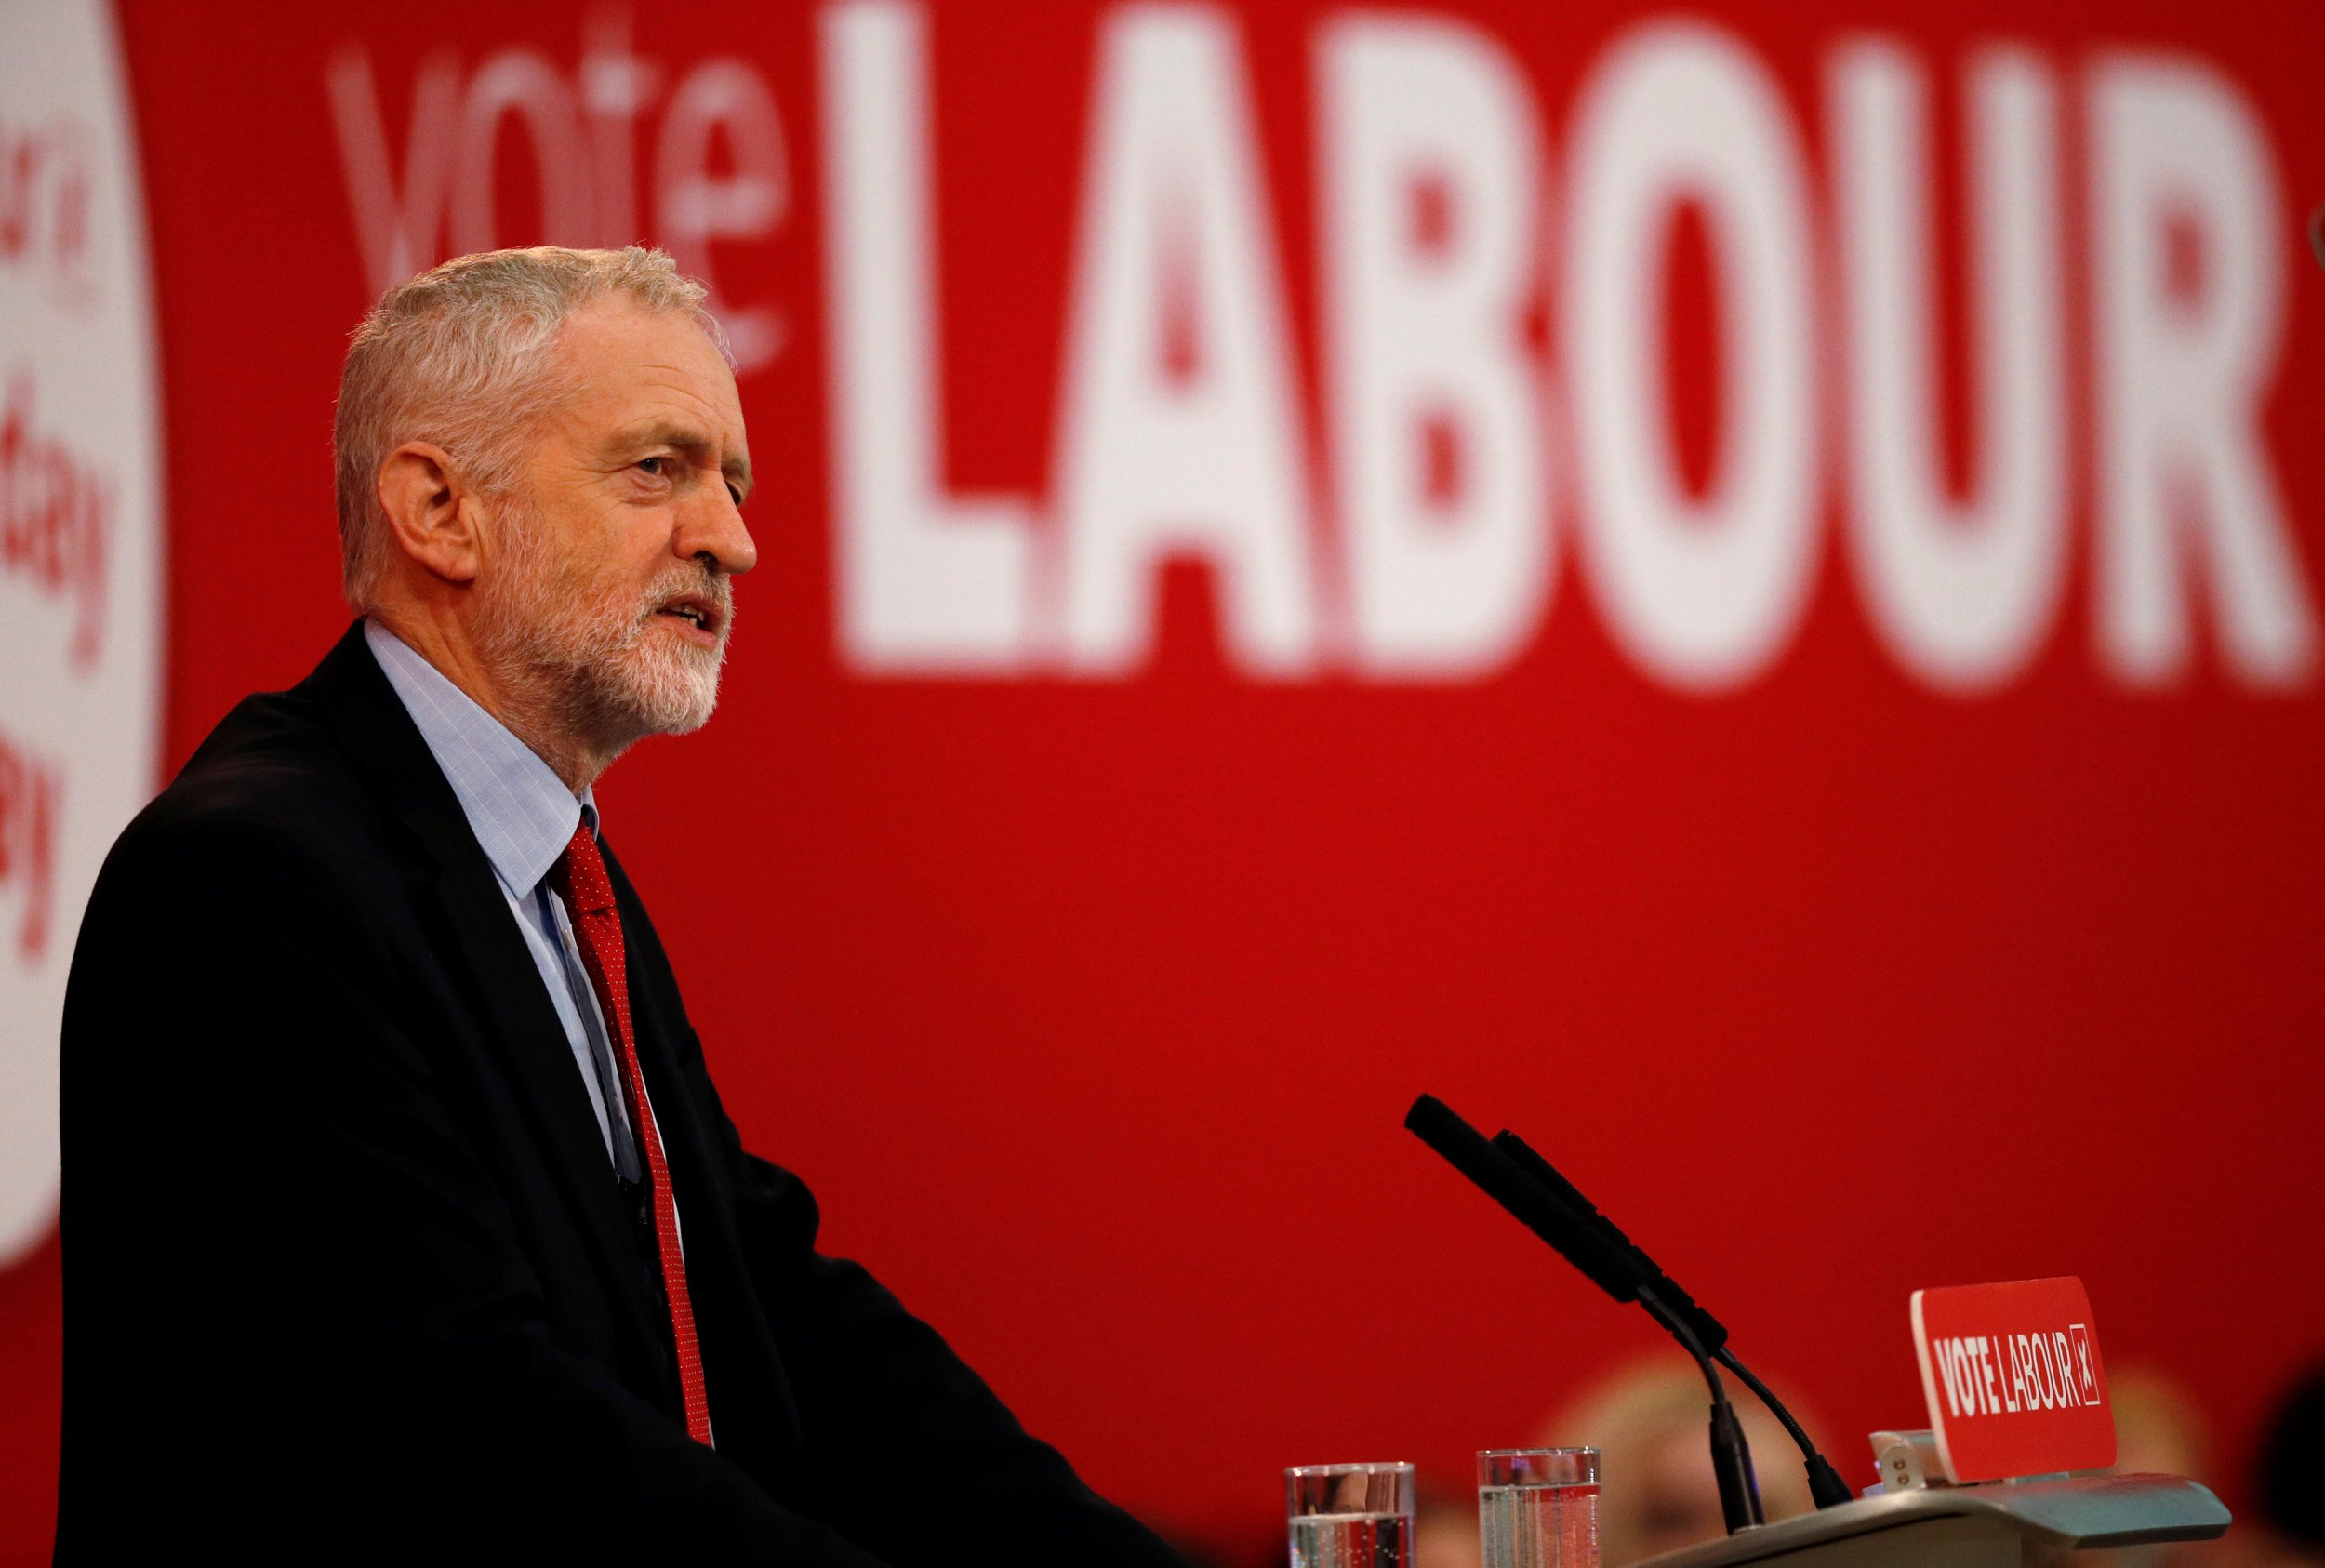 With poverty at an all-time high, we need a radical Labour government more than ever before